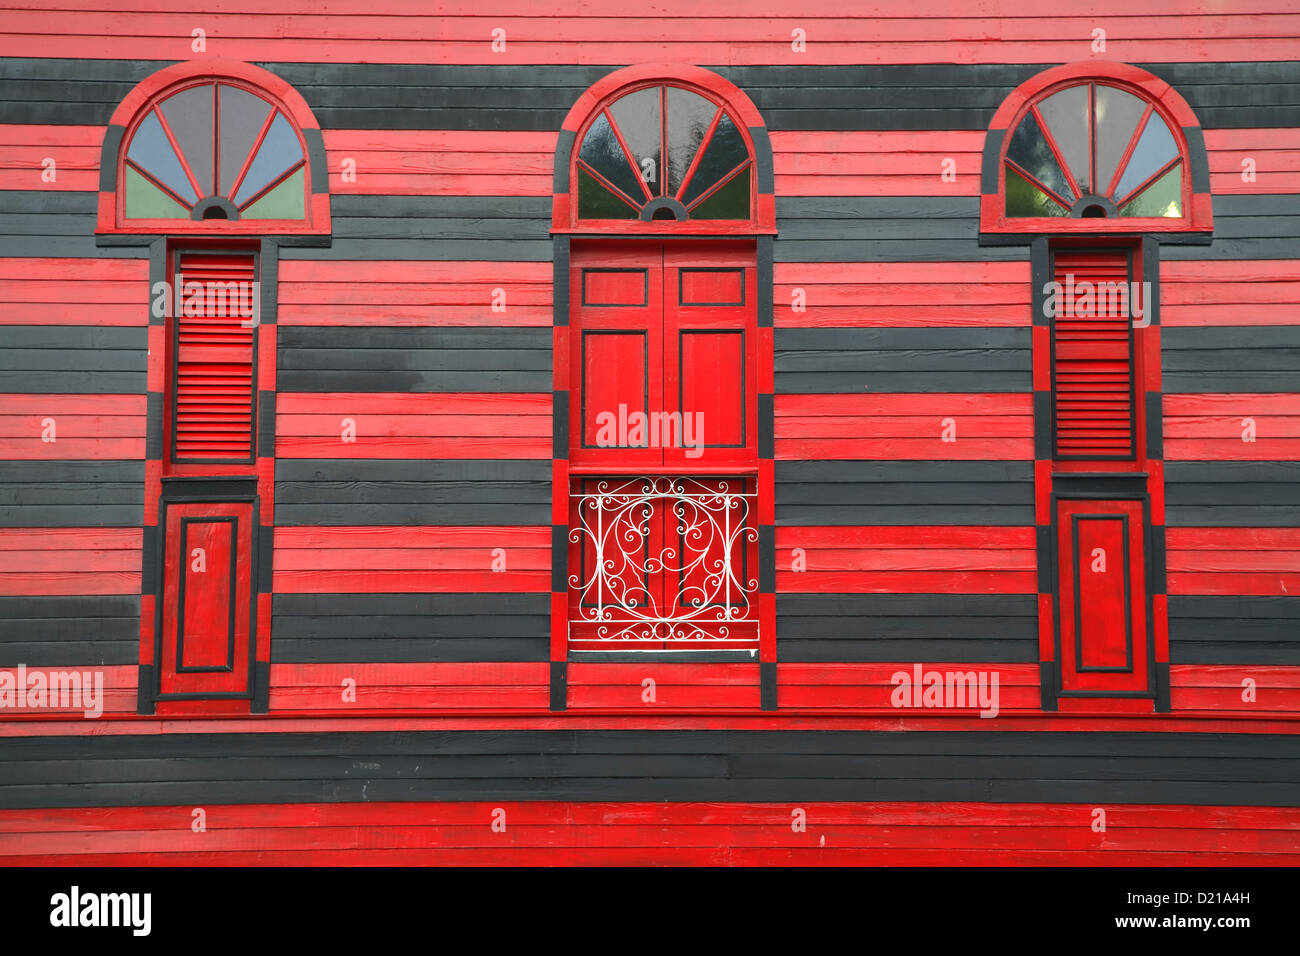 Windows, Parque de Bombas/Firehouse (1883), Ponce, Puerto Rico Photo Stock